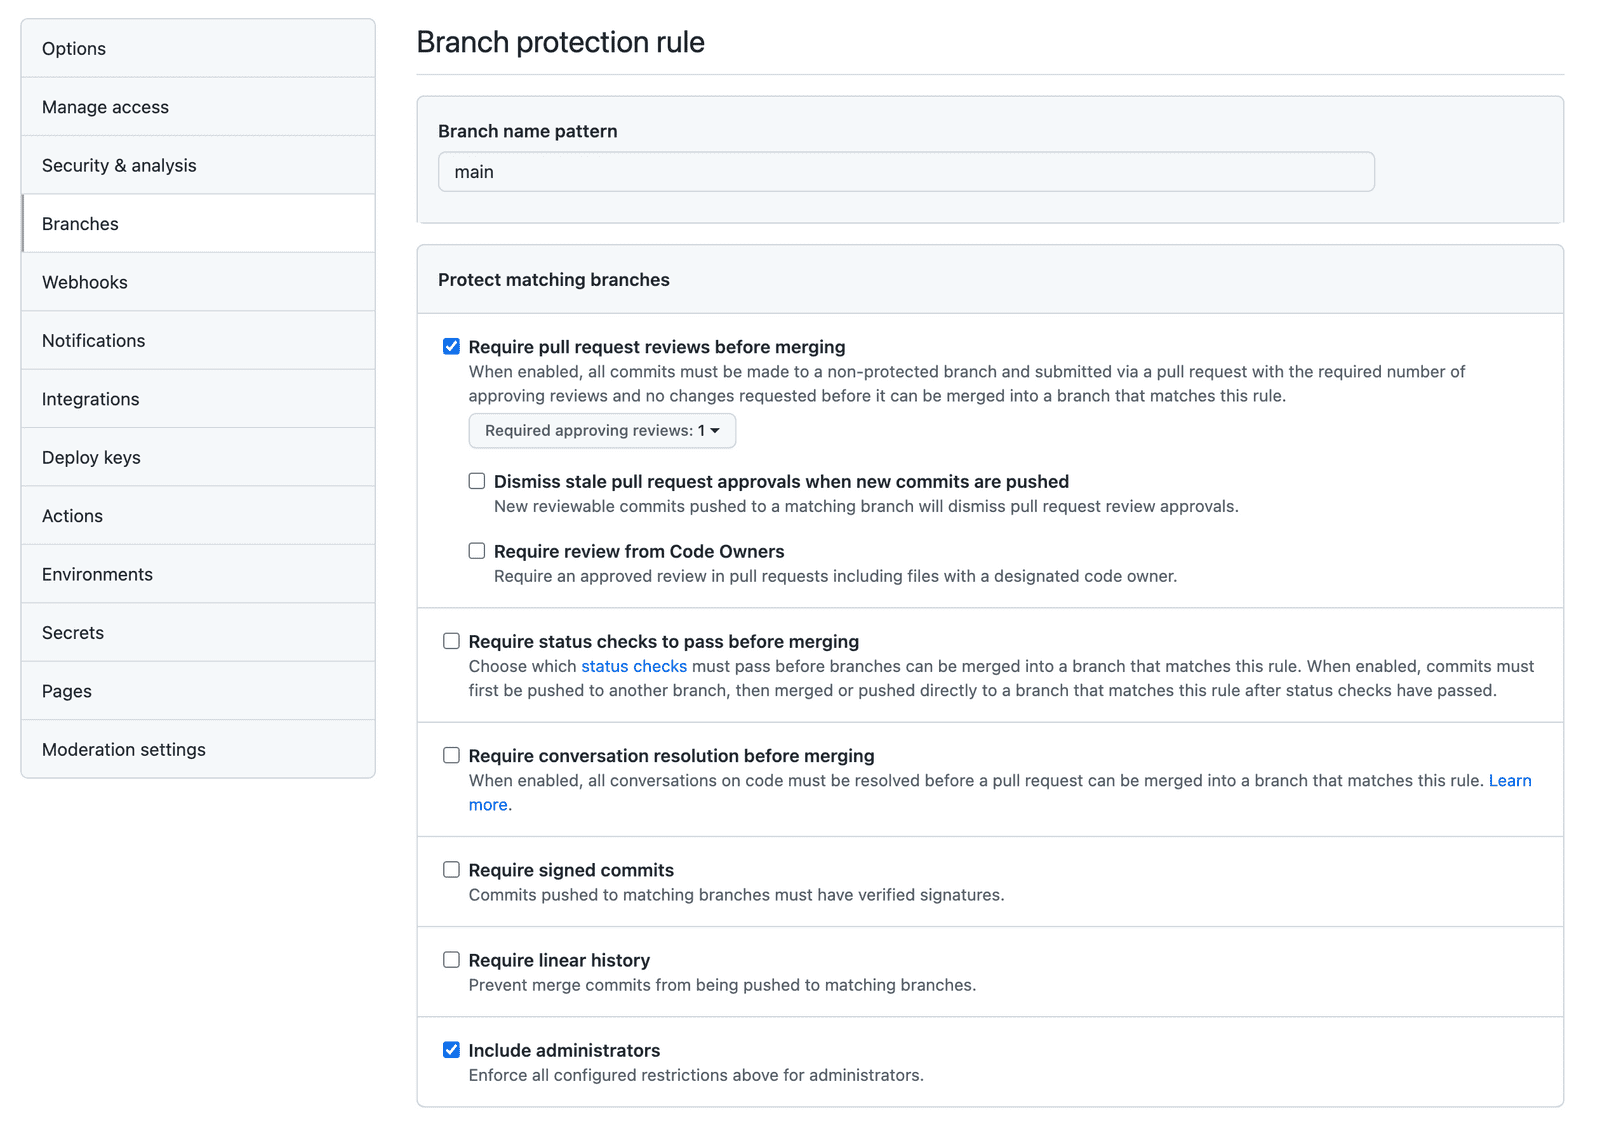 Enabling branch protection rules in Github